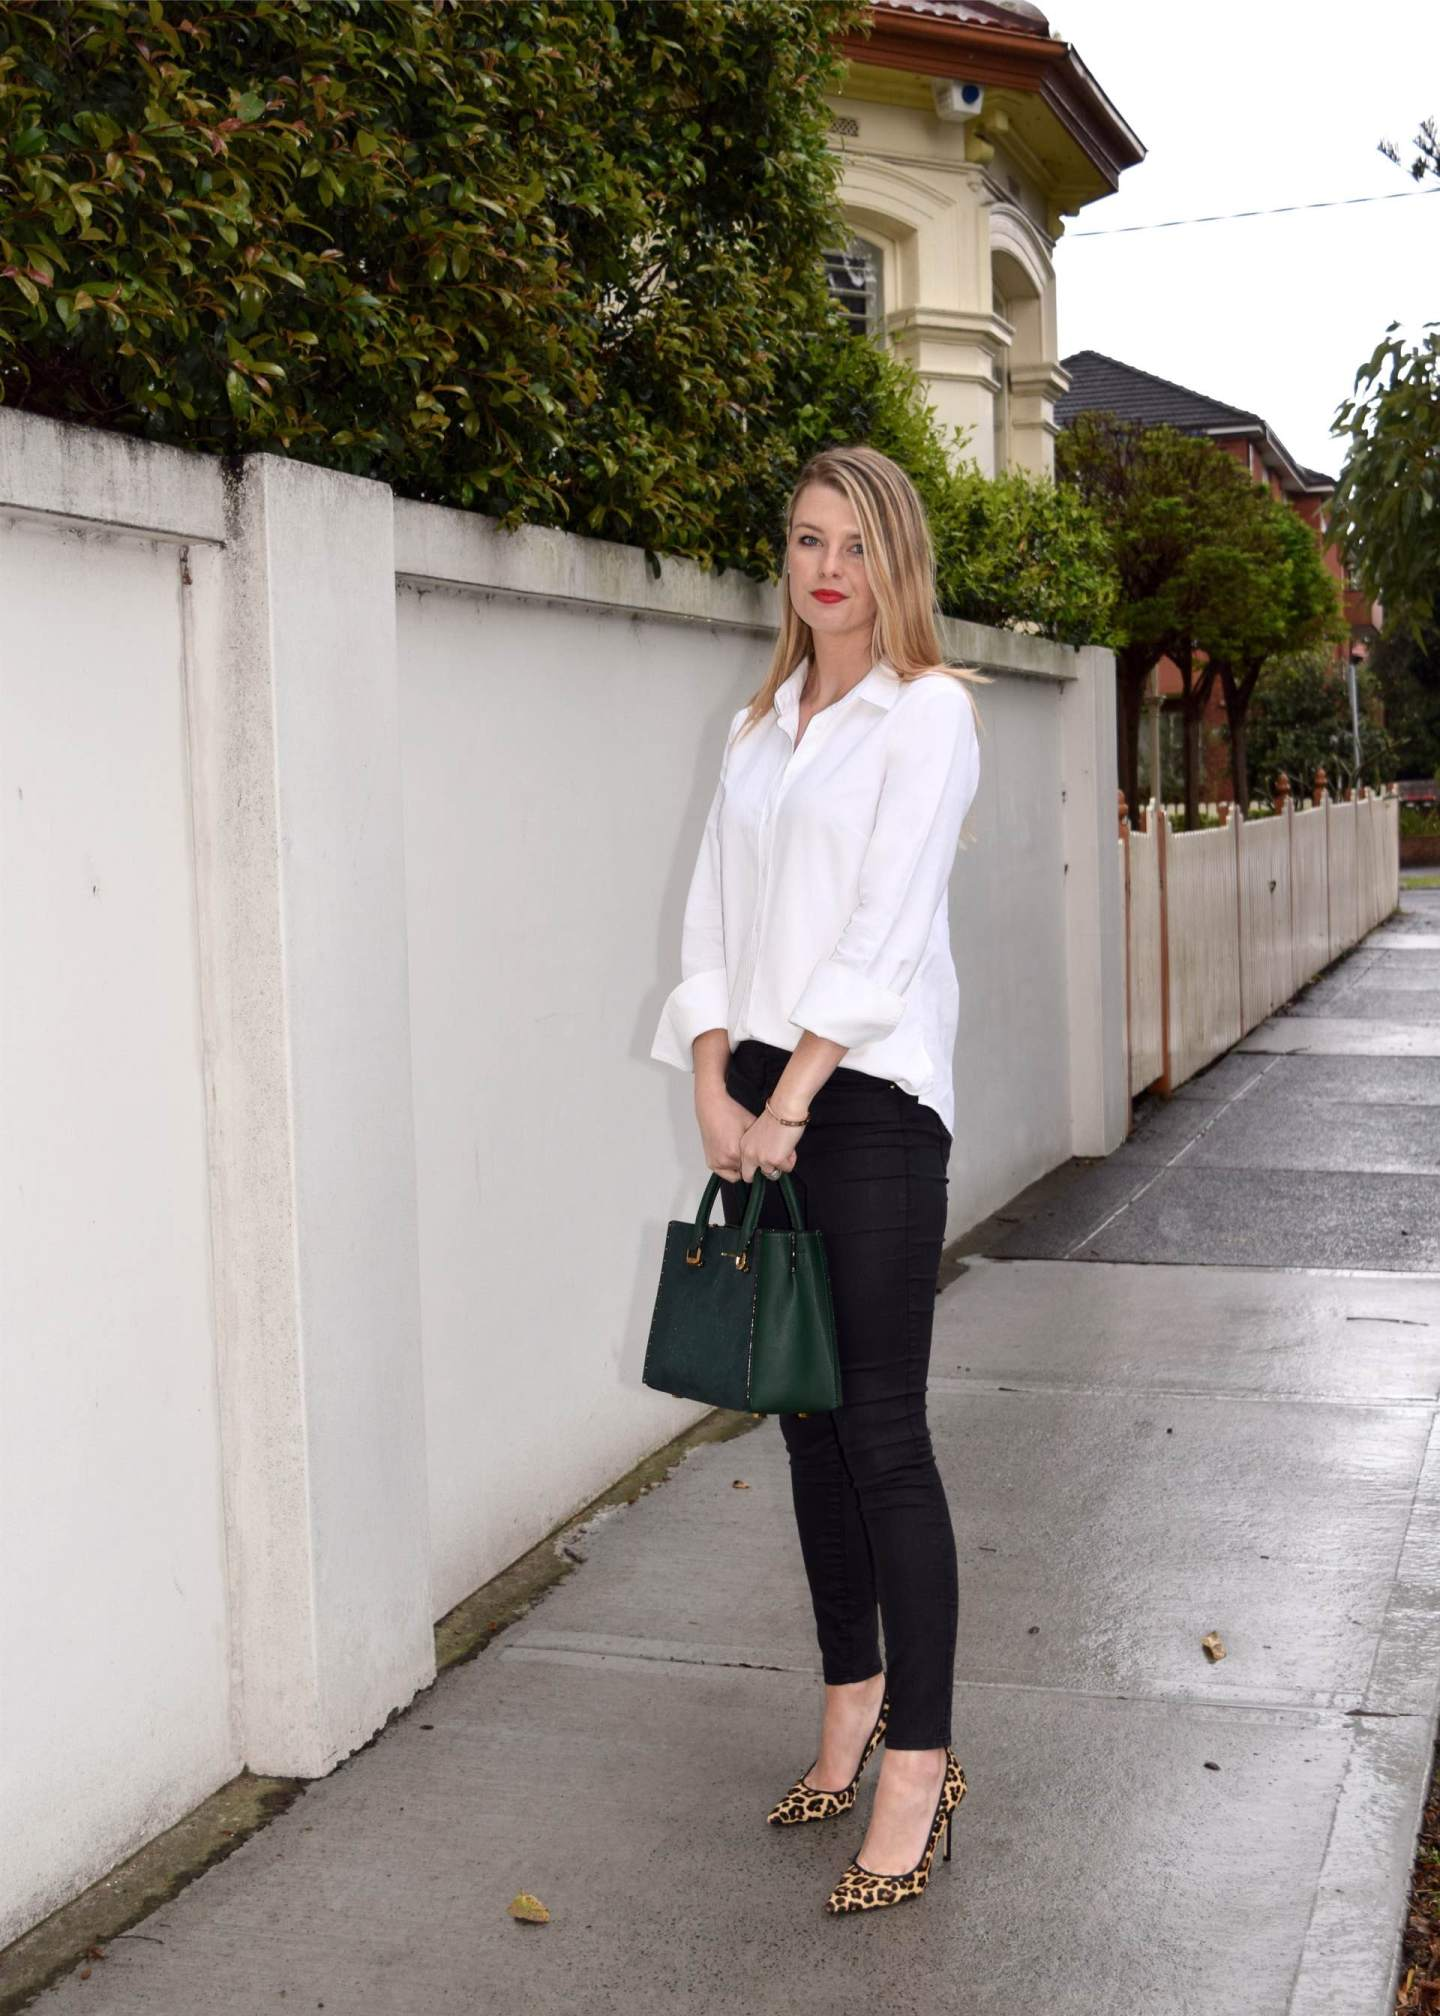 121dee2a436 Wear your staple white shirt with a pair of casual pants or jeans. Try  rolling up the sleeves and leaving the shirt untucked for a more relaxed  look.